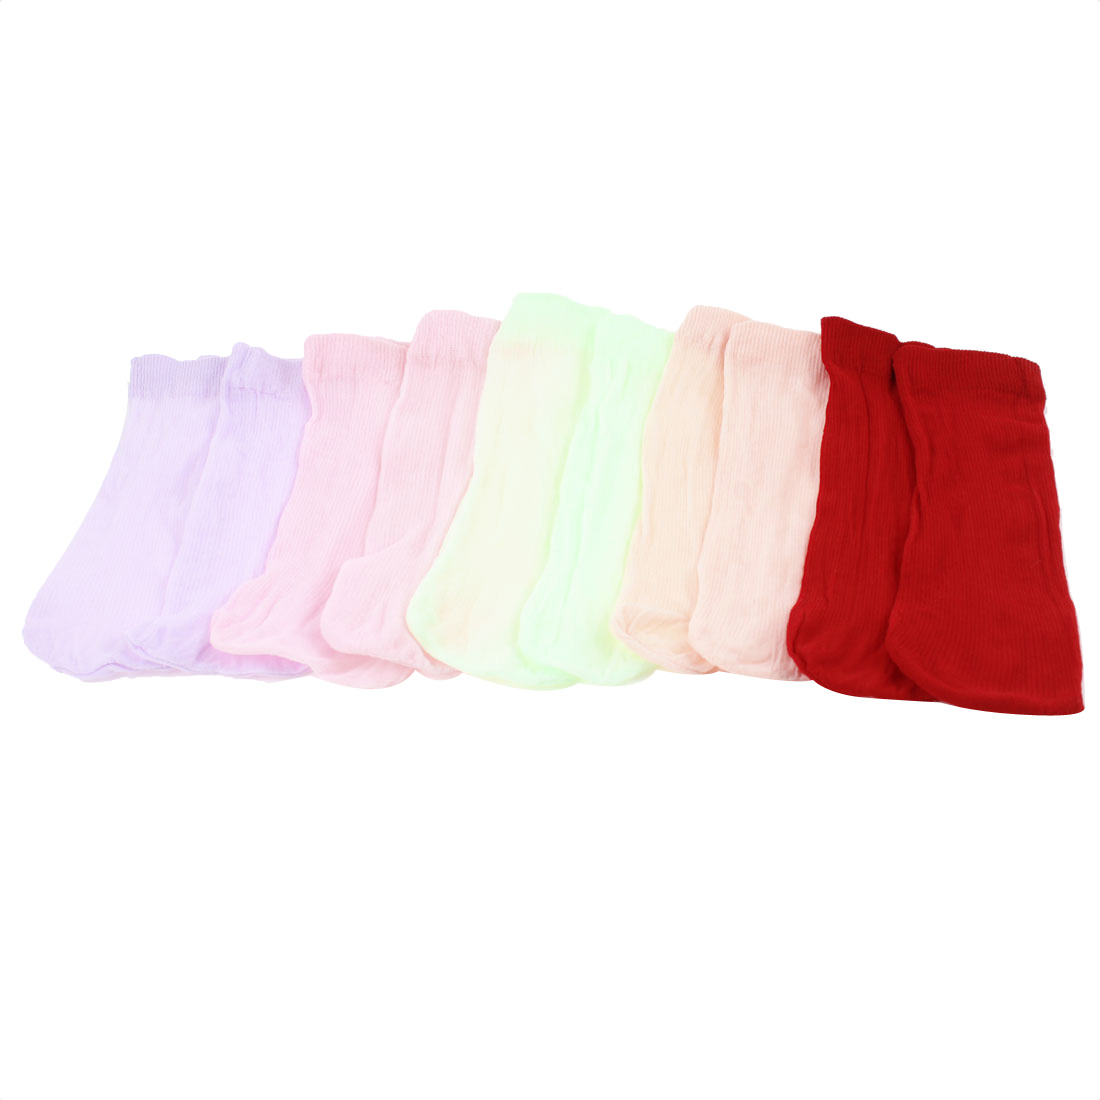 Kids Children Assorted Color Stretchy Cotton Blends Hosiery Socks 20 Pair